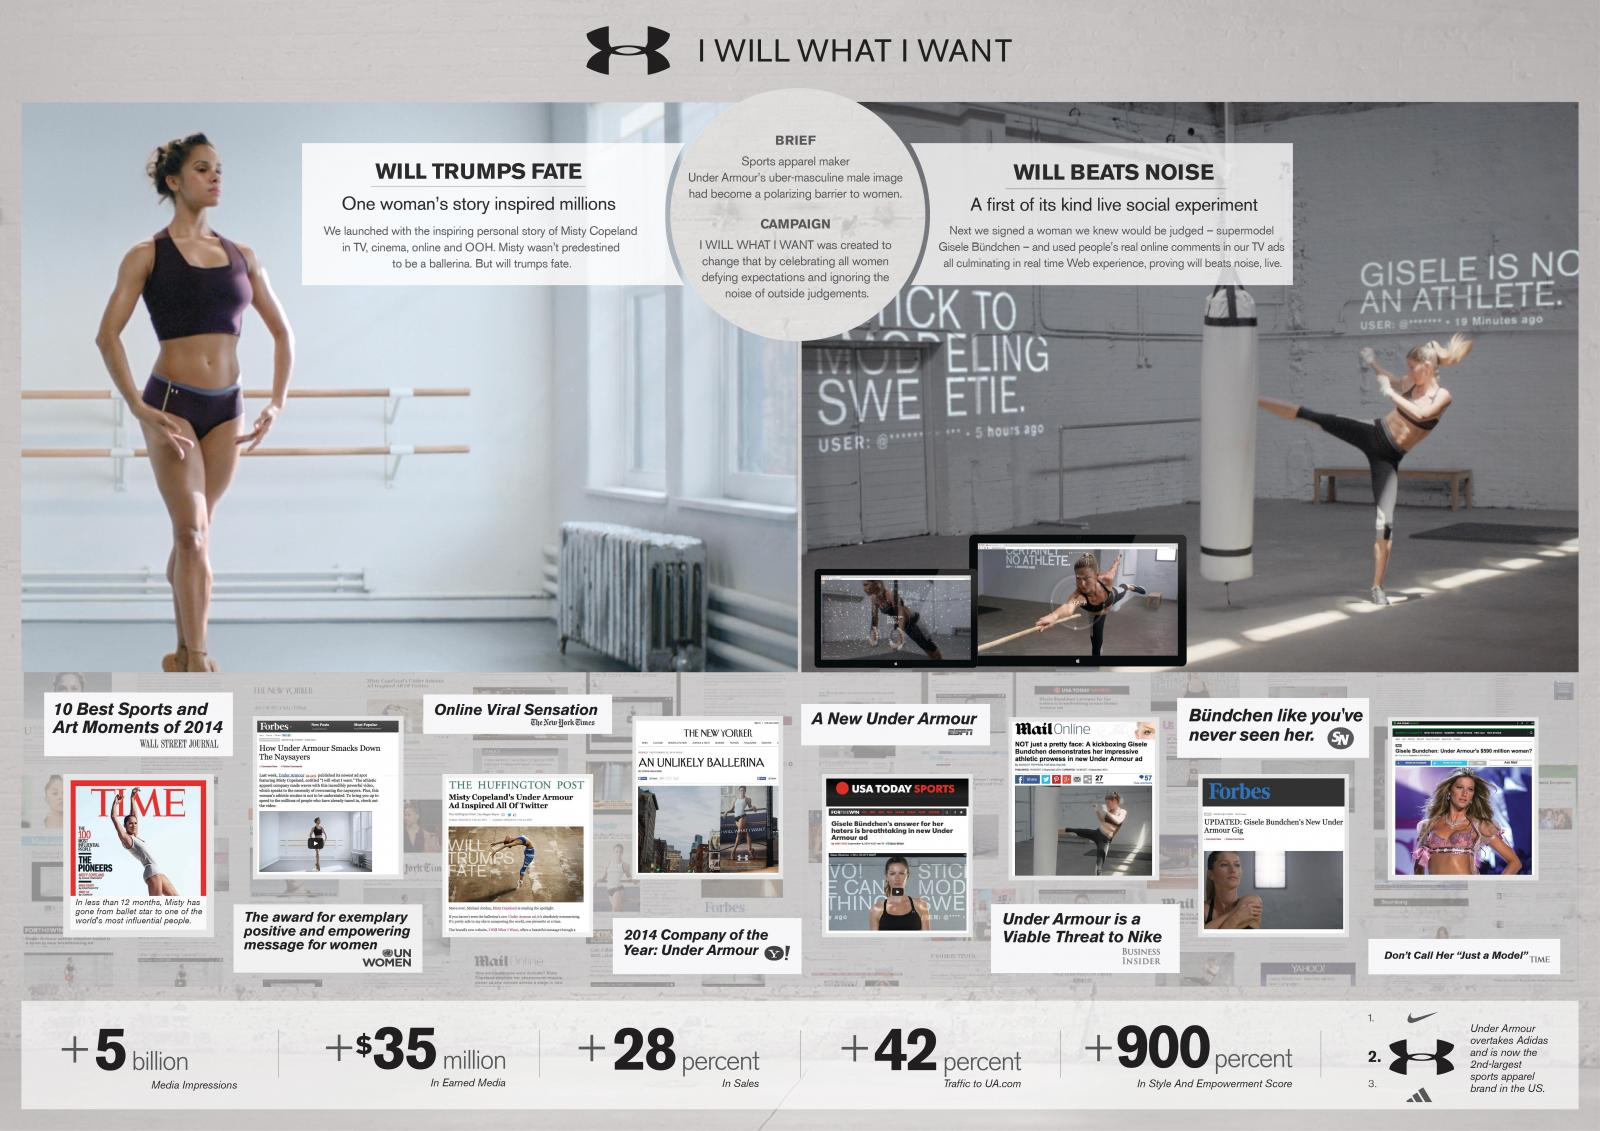 under-armour-i-will-what-i-want-image-1600-33652